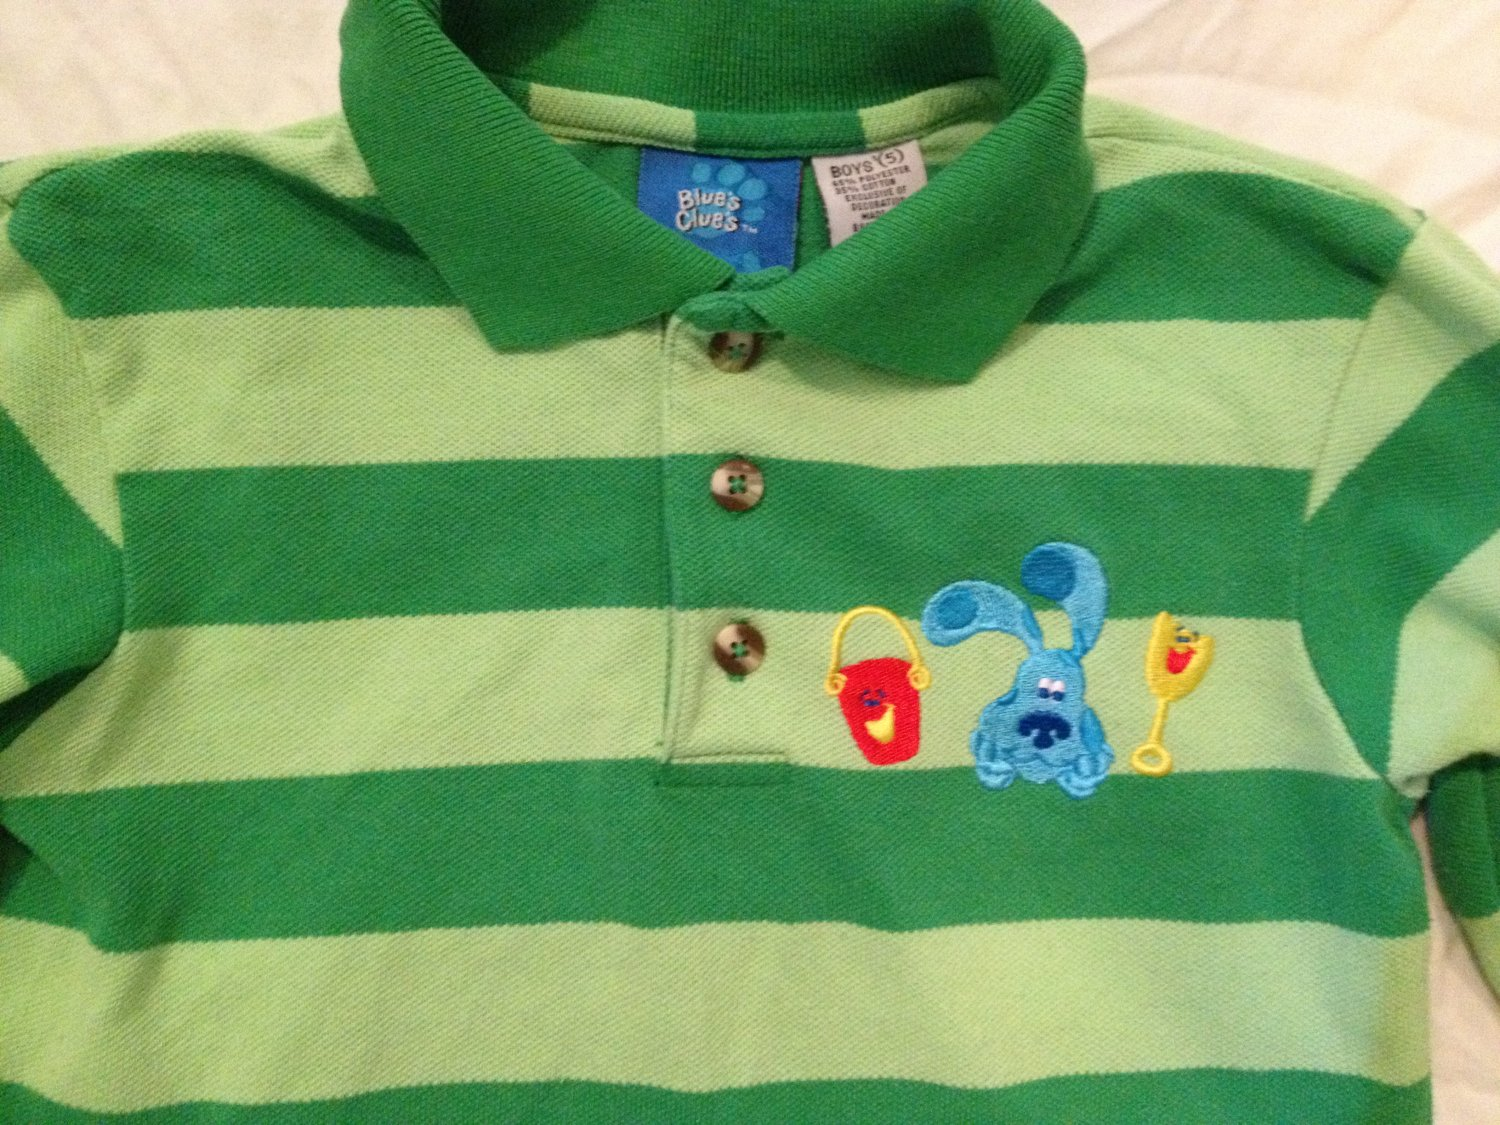 Blues Clues Steve Polo Shirt Boys Size 5 Green Rugby